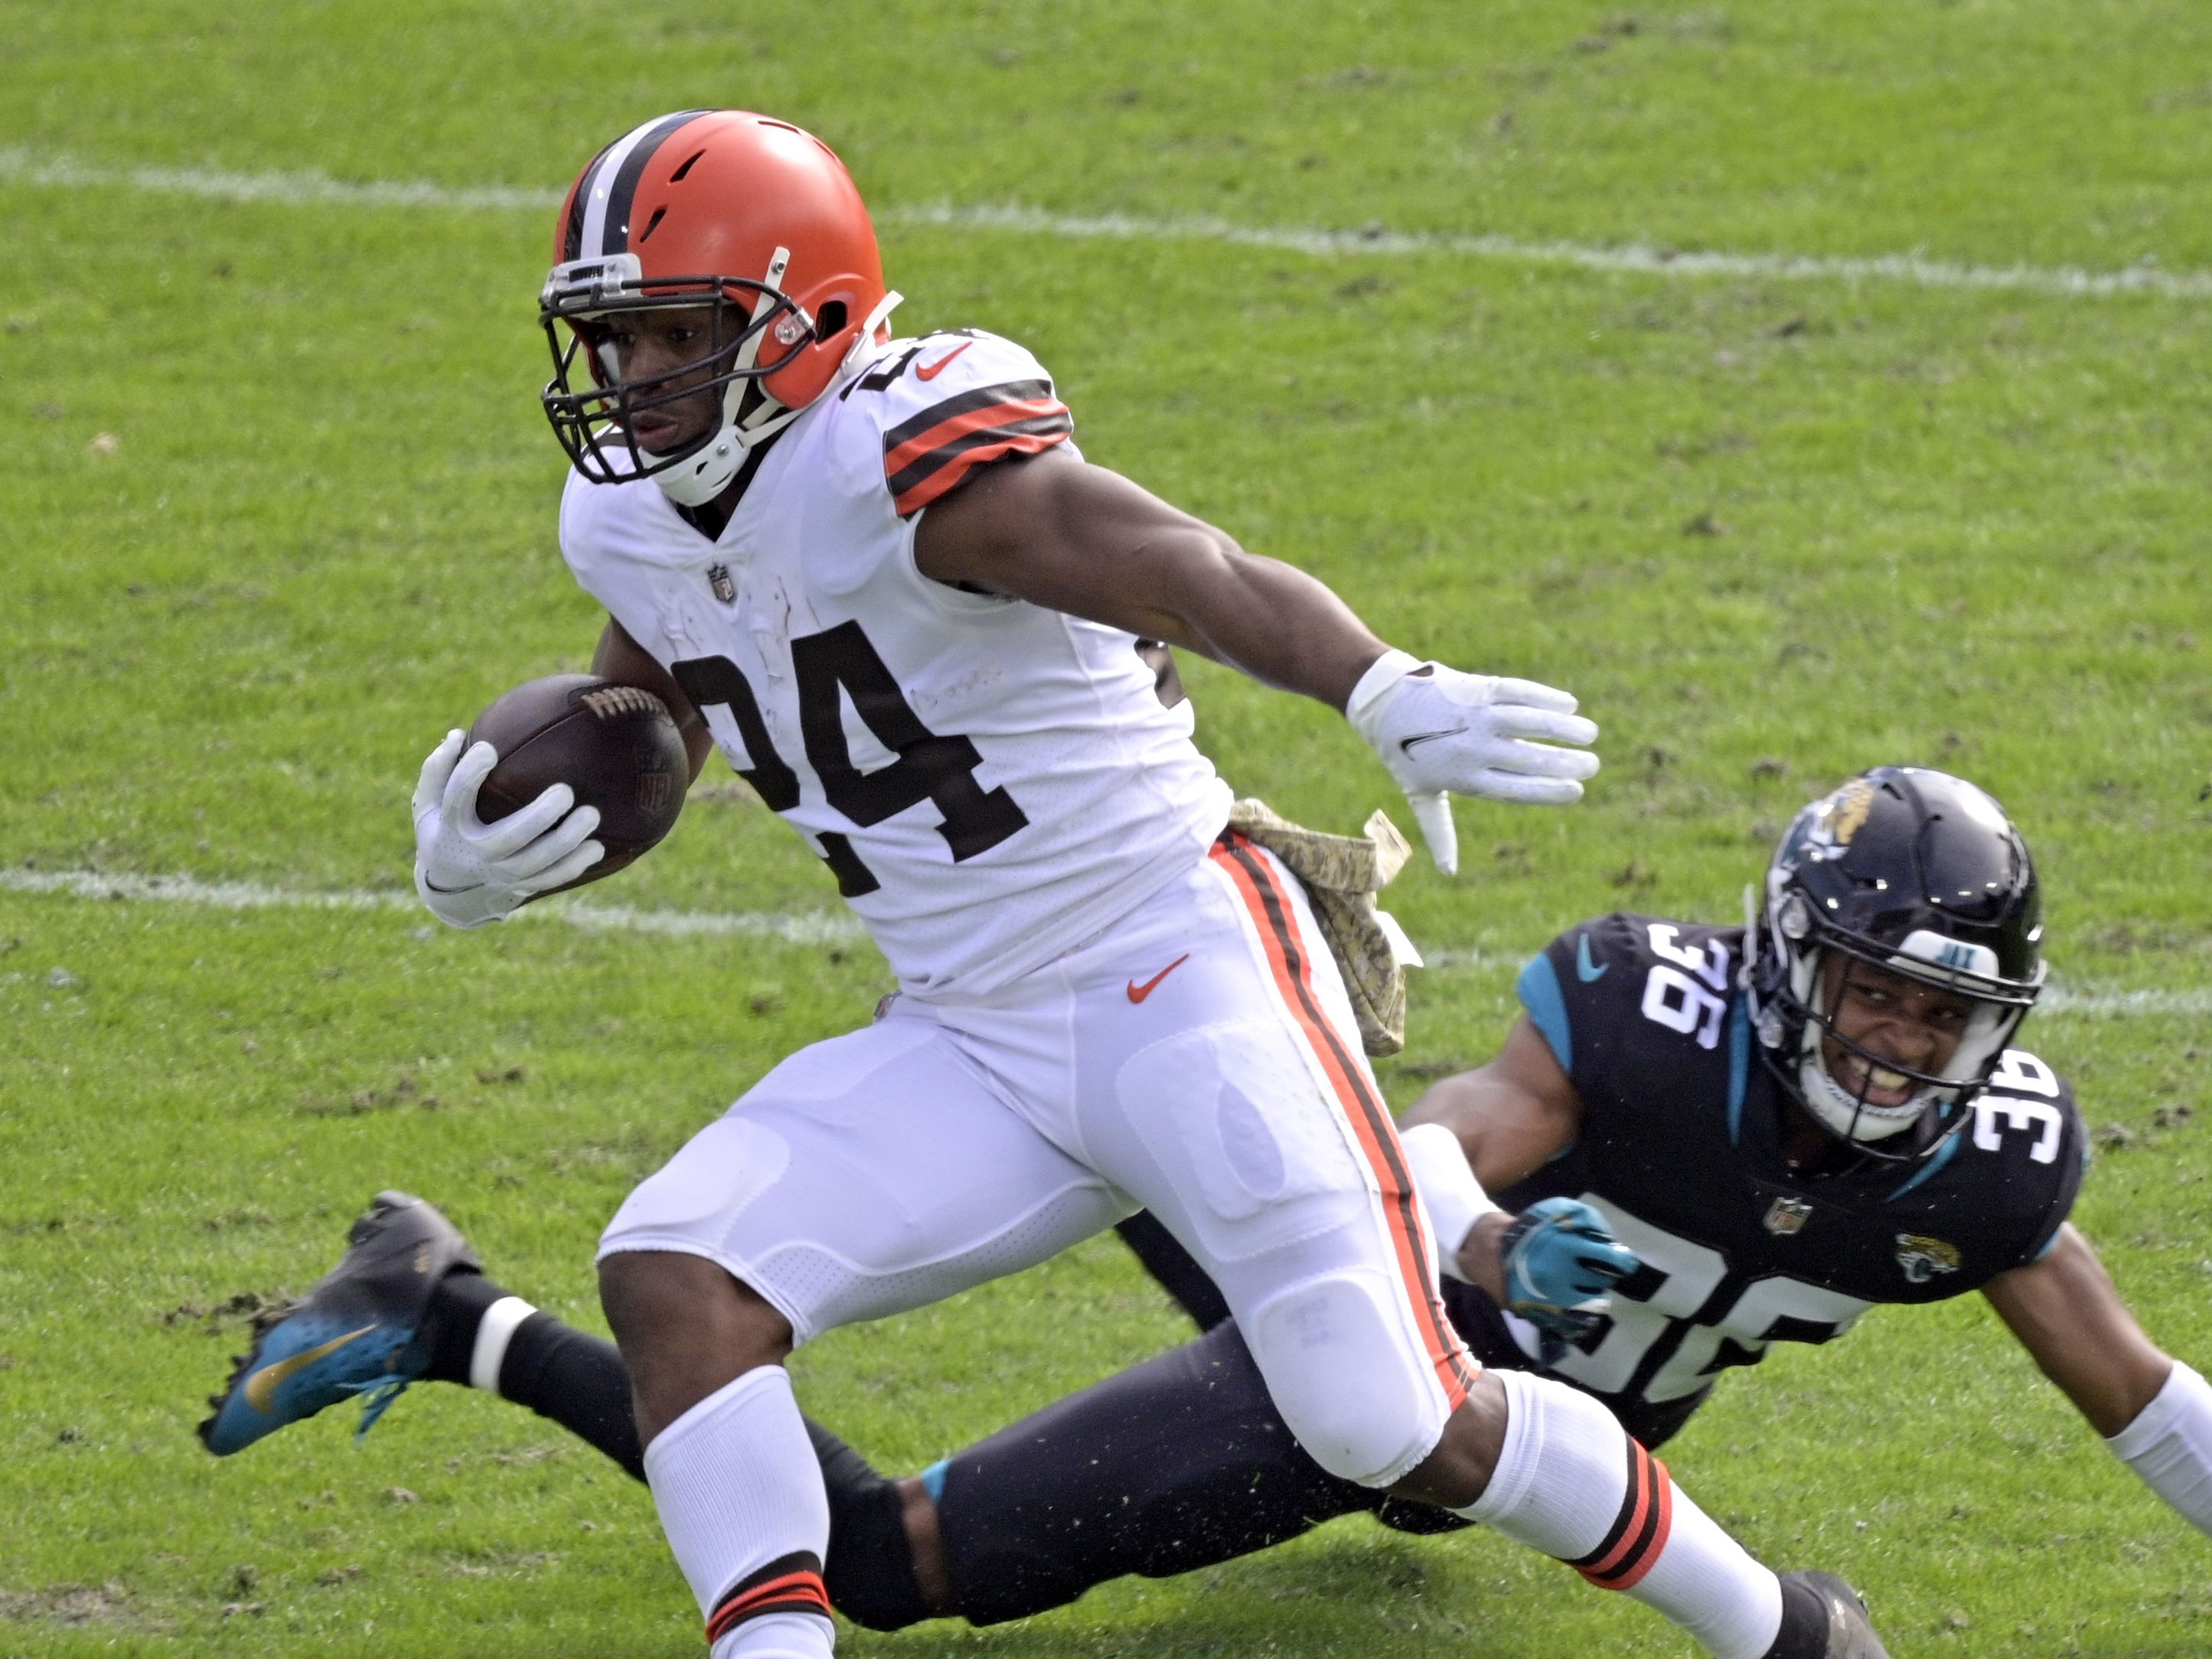 Cleveland Browns turn back Jacksonville Jaguars, 27-25